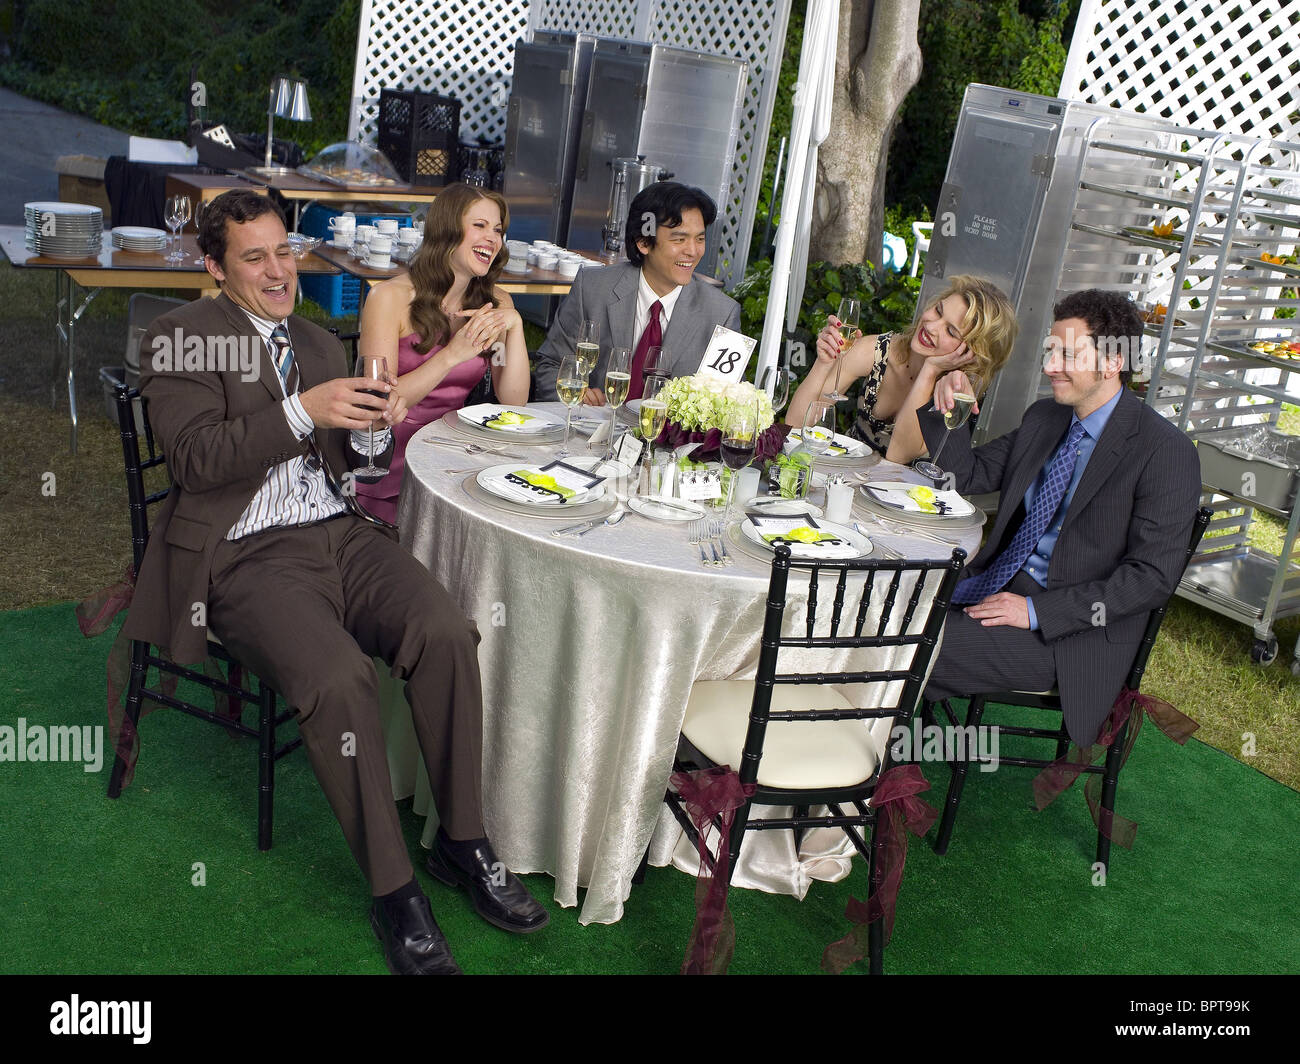 CONOR DUBIN PASCALE HUTTON JOHN CHO RHEA SEEHORN & JARRAD PAUL THE SINGLES TABLE (2007) - Stock Image